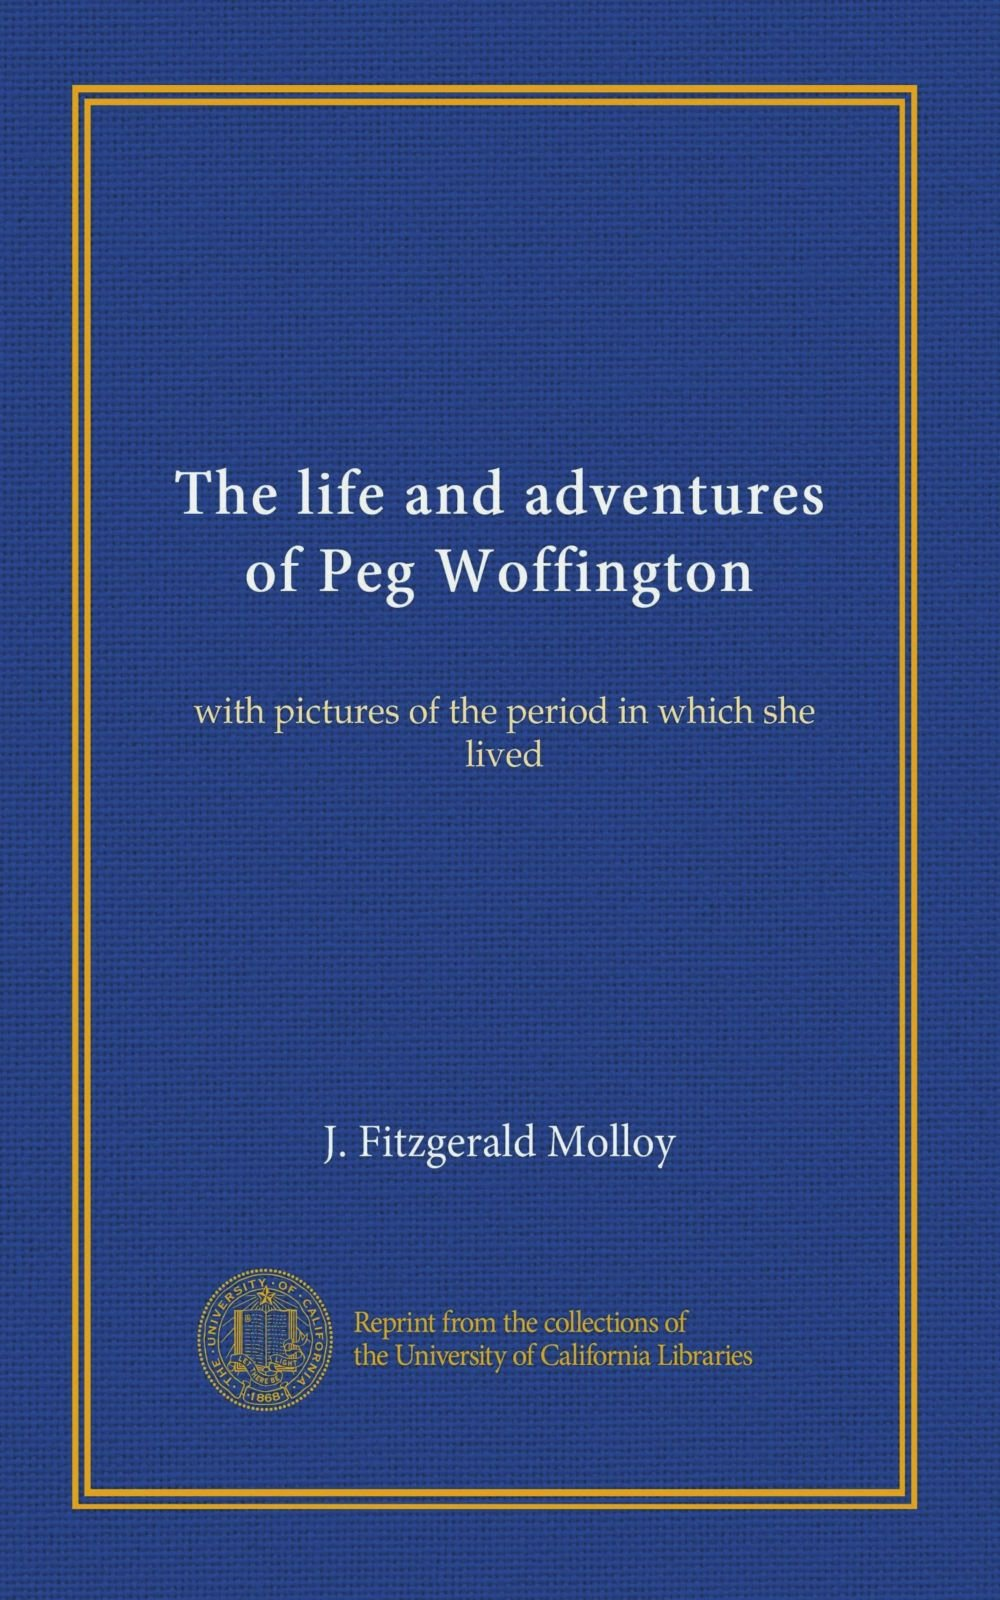 Download The life and adventures of Peg Woffington: with pictures of the period in which she lived pdf epub